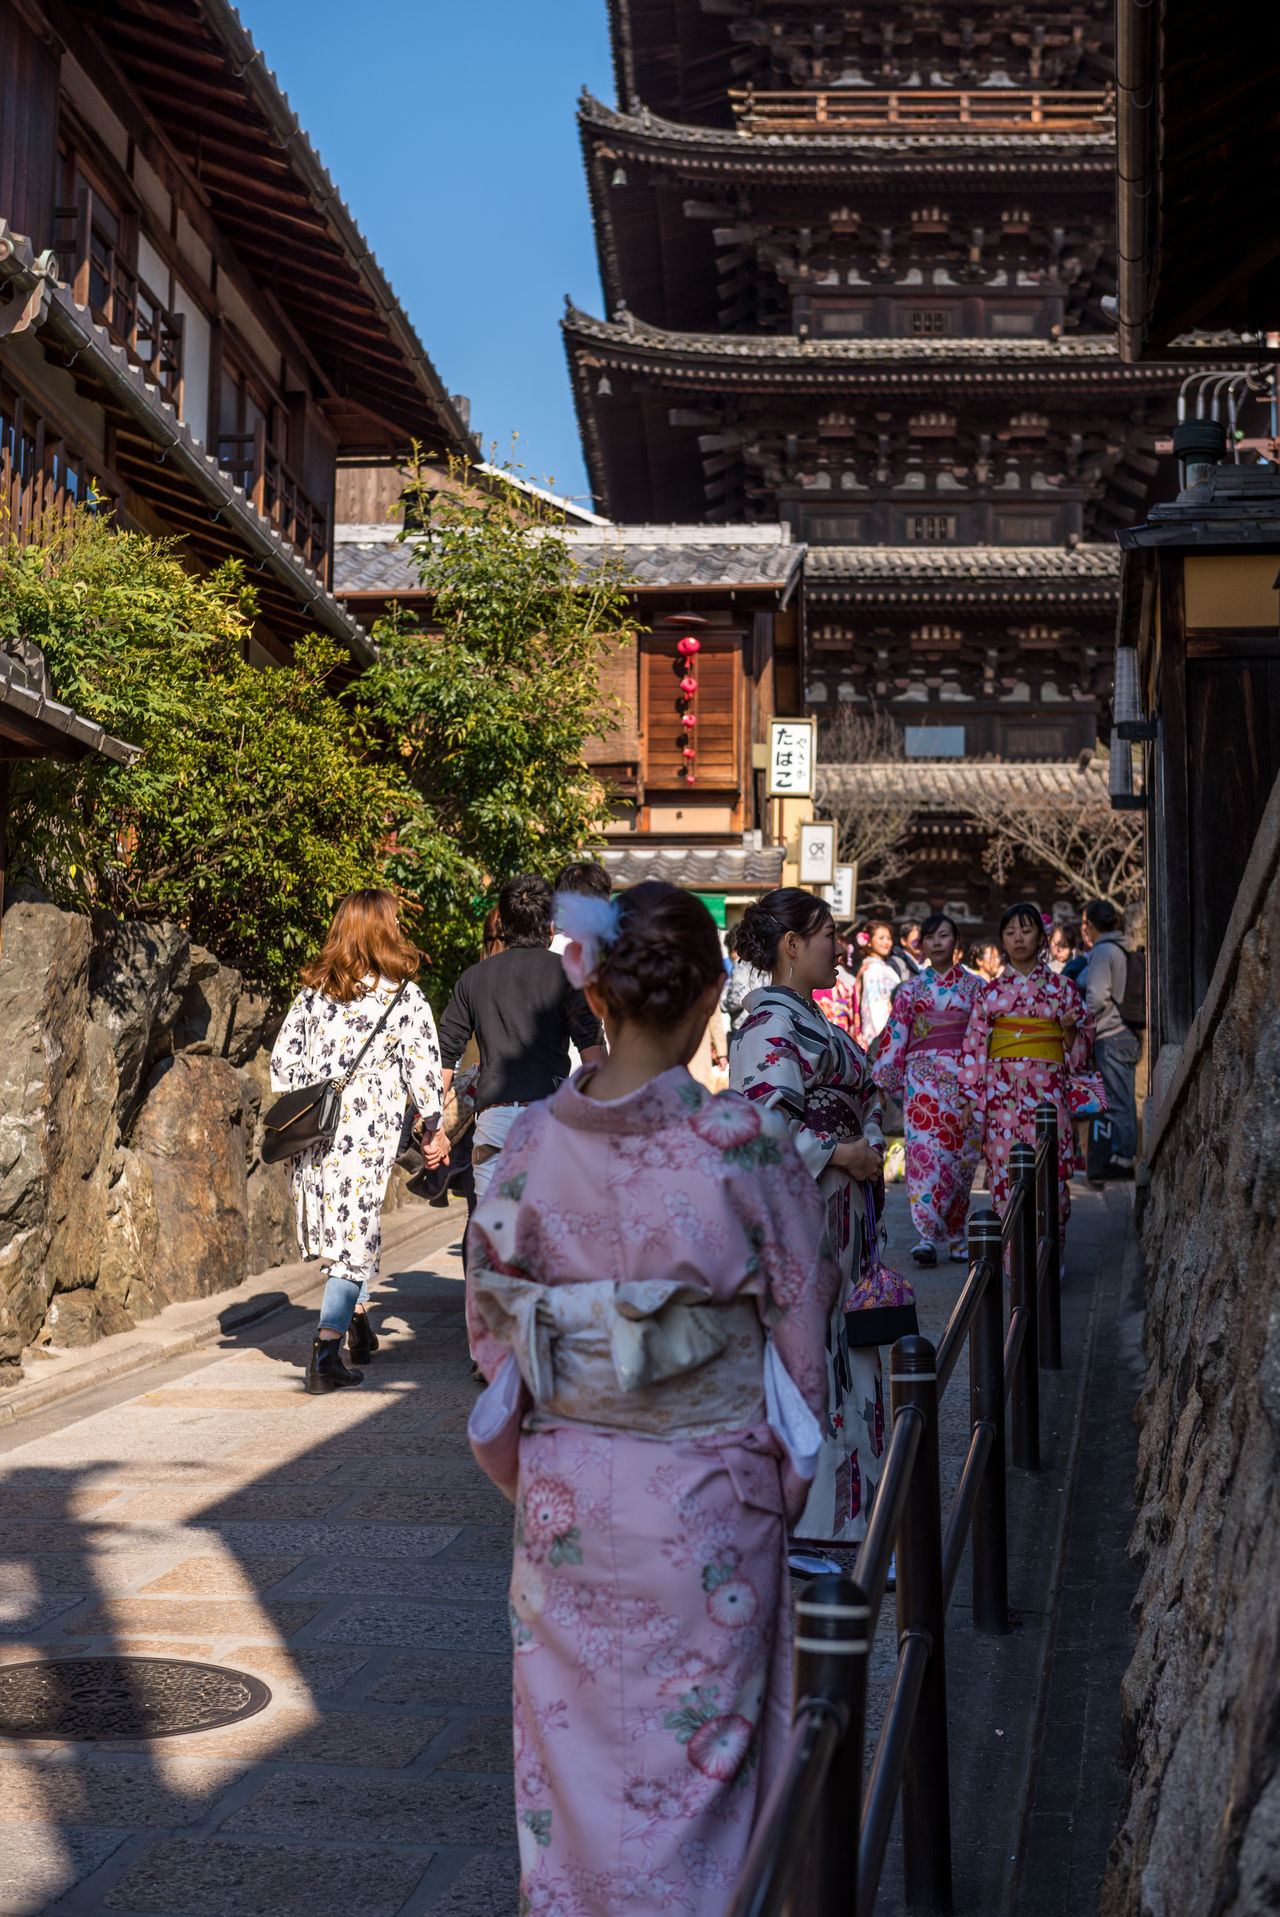 Yasaka Pagoda Kyoto Architecture Cultures Day Full Length Japan Japan Photography Japanese  Kimono Kyoto Kyoto,japan Men Outdoors People Place Of Worship Real People Rear View Religion Spirituality Traditional Clothing Travel Destinations Women Yasaka Pagoda Yasaka Shrine Yasaka Tower YUKATA